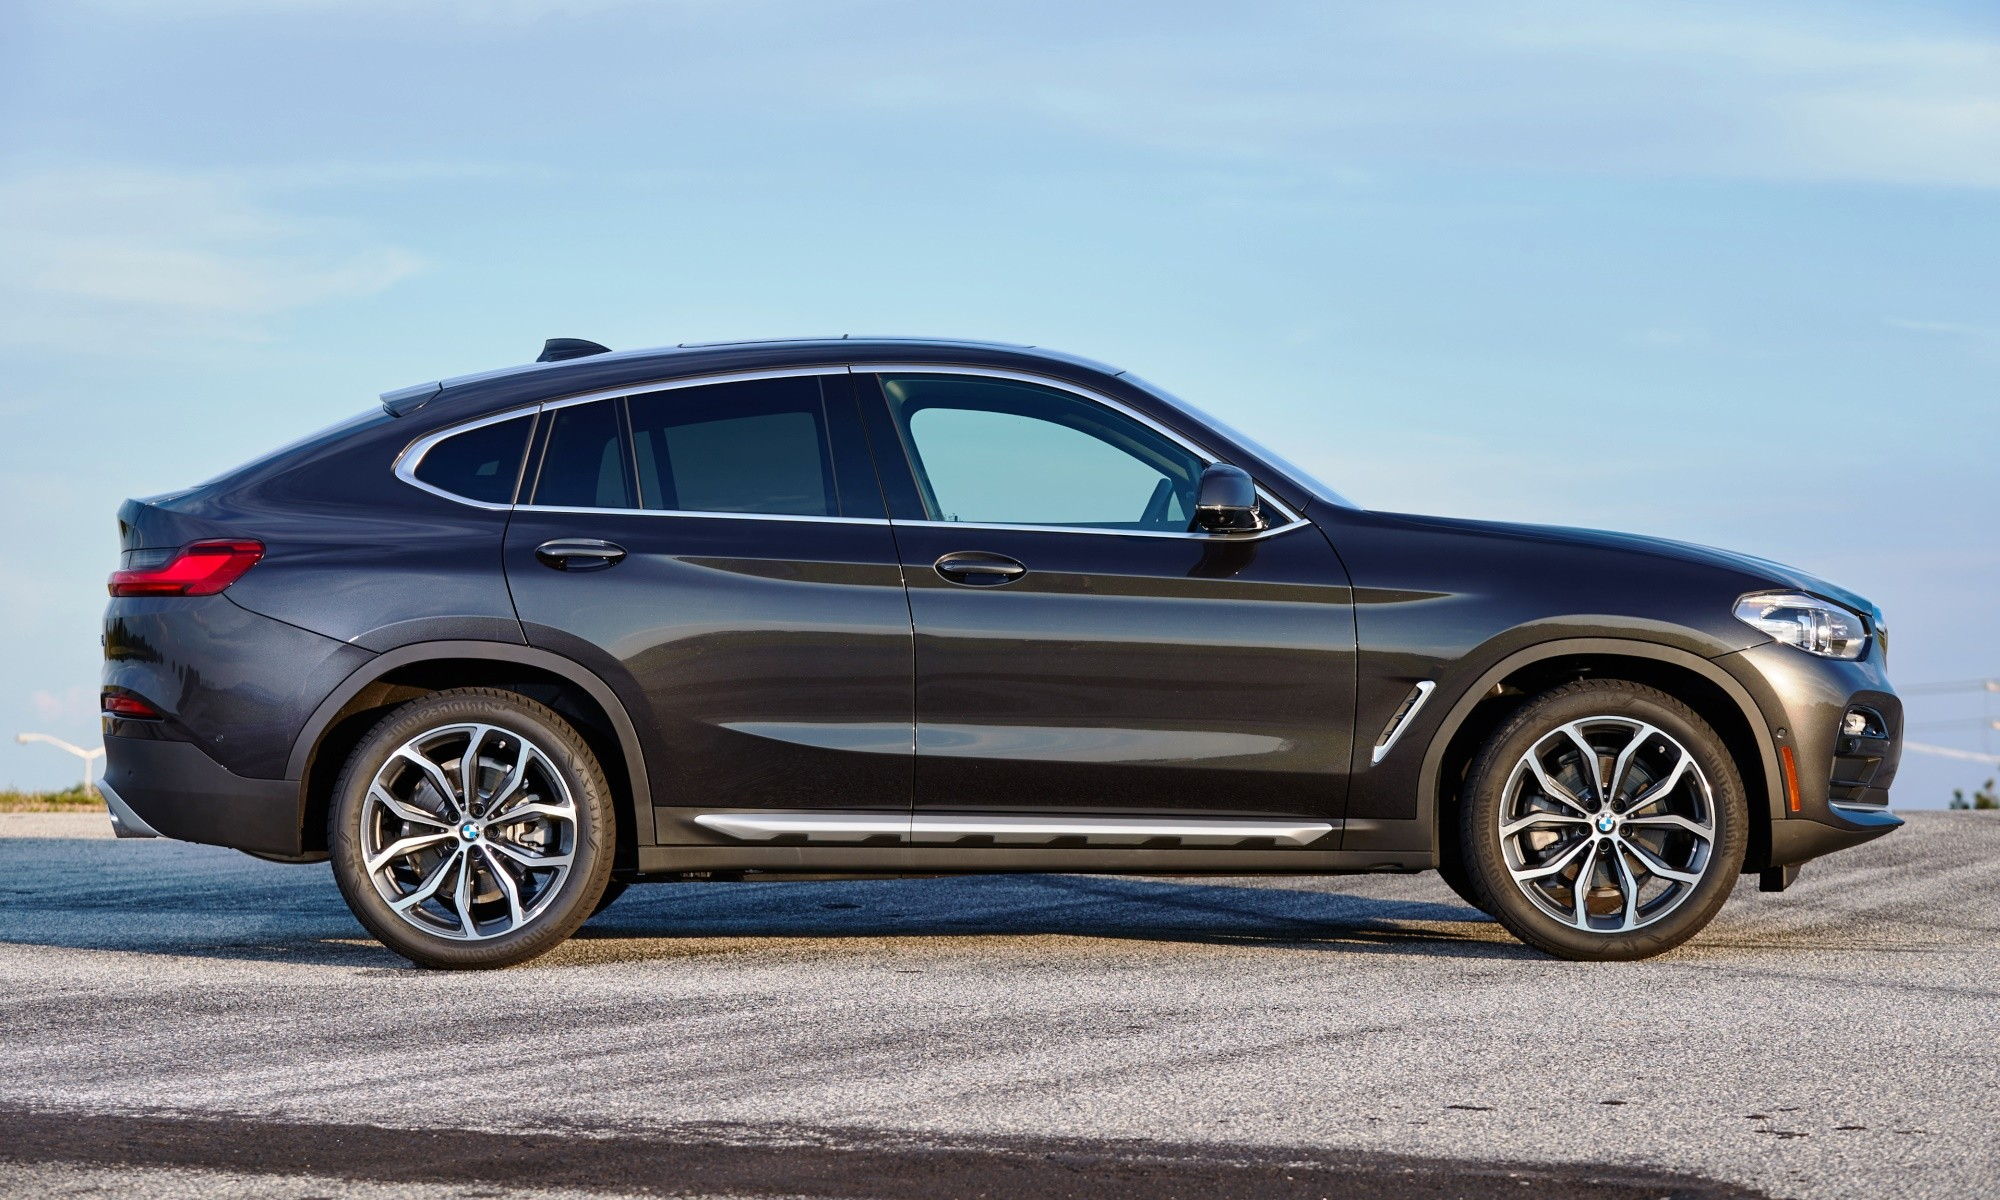 The profile of the X4 with distinctive sloping roofline